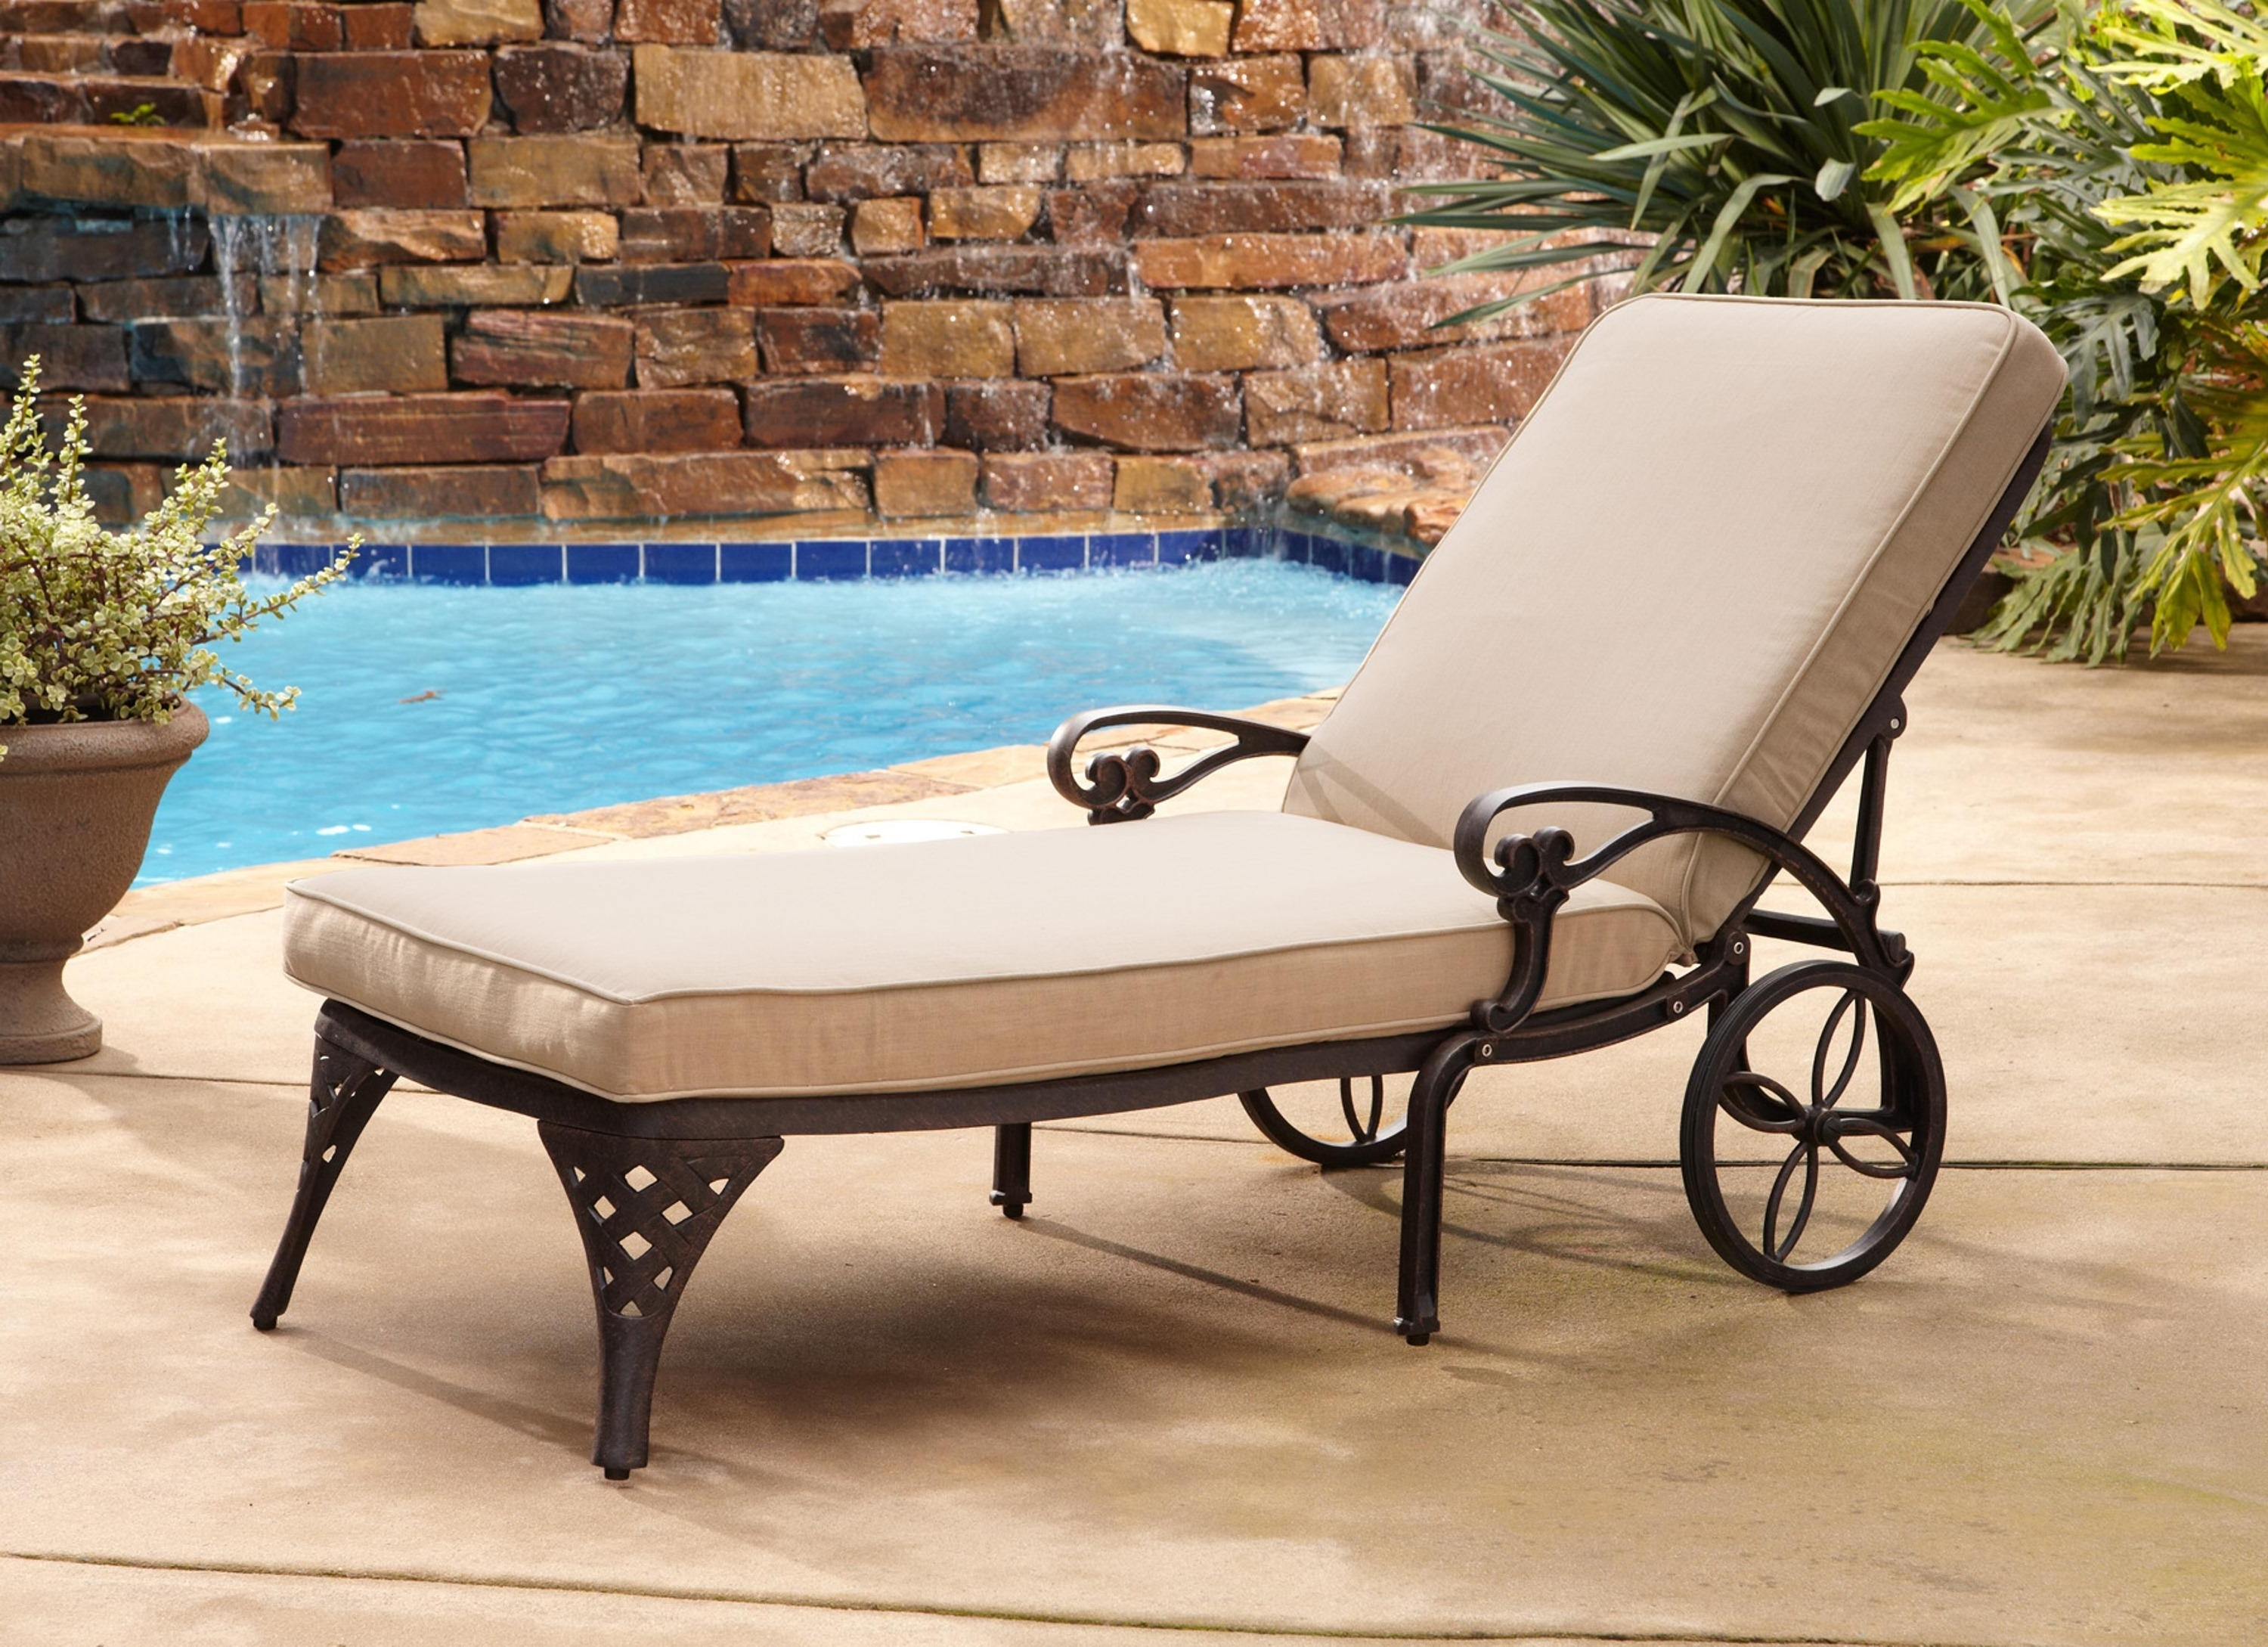 Outdoor Pool Lounge Chairs • Lounge Chairs Ideas Pertaining To Recent Outdoor Pool Chaise Lounge Chairs (View 2 of 15)